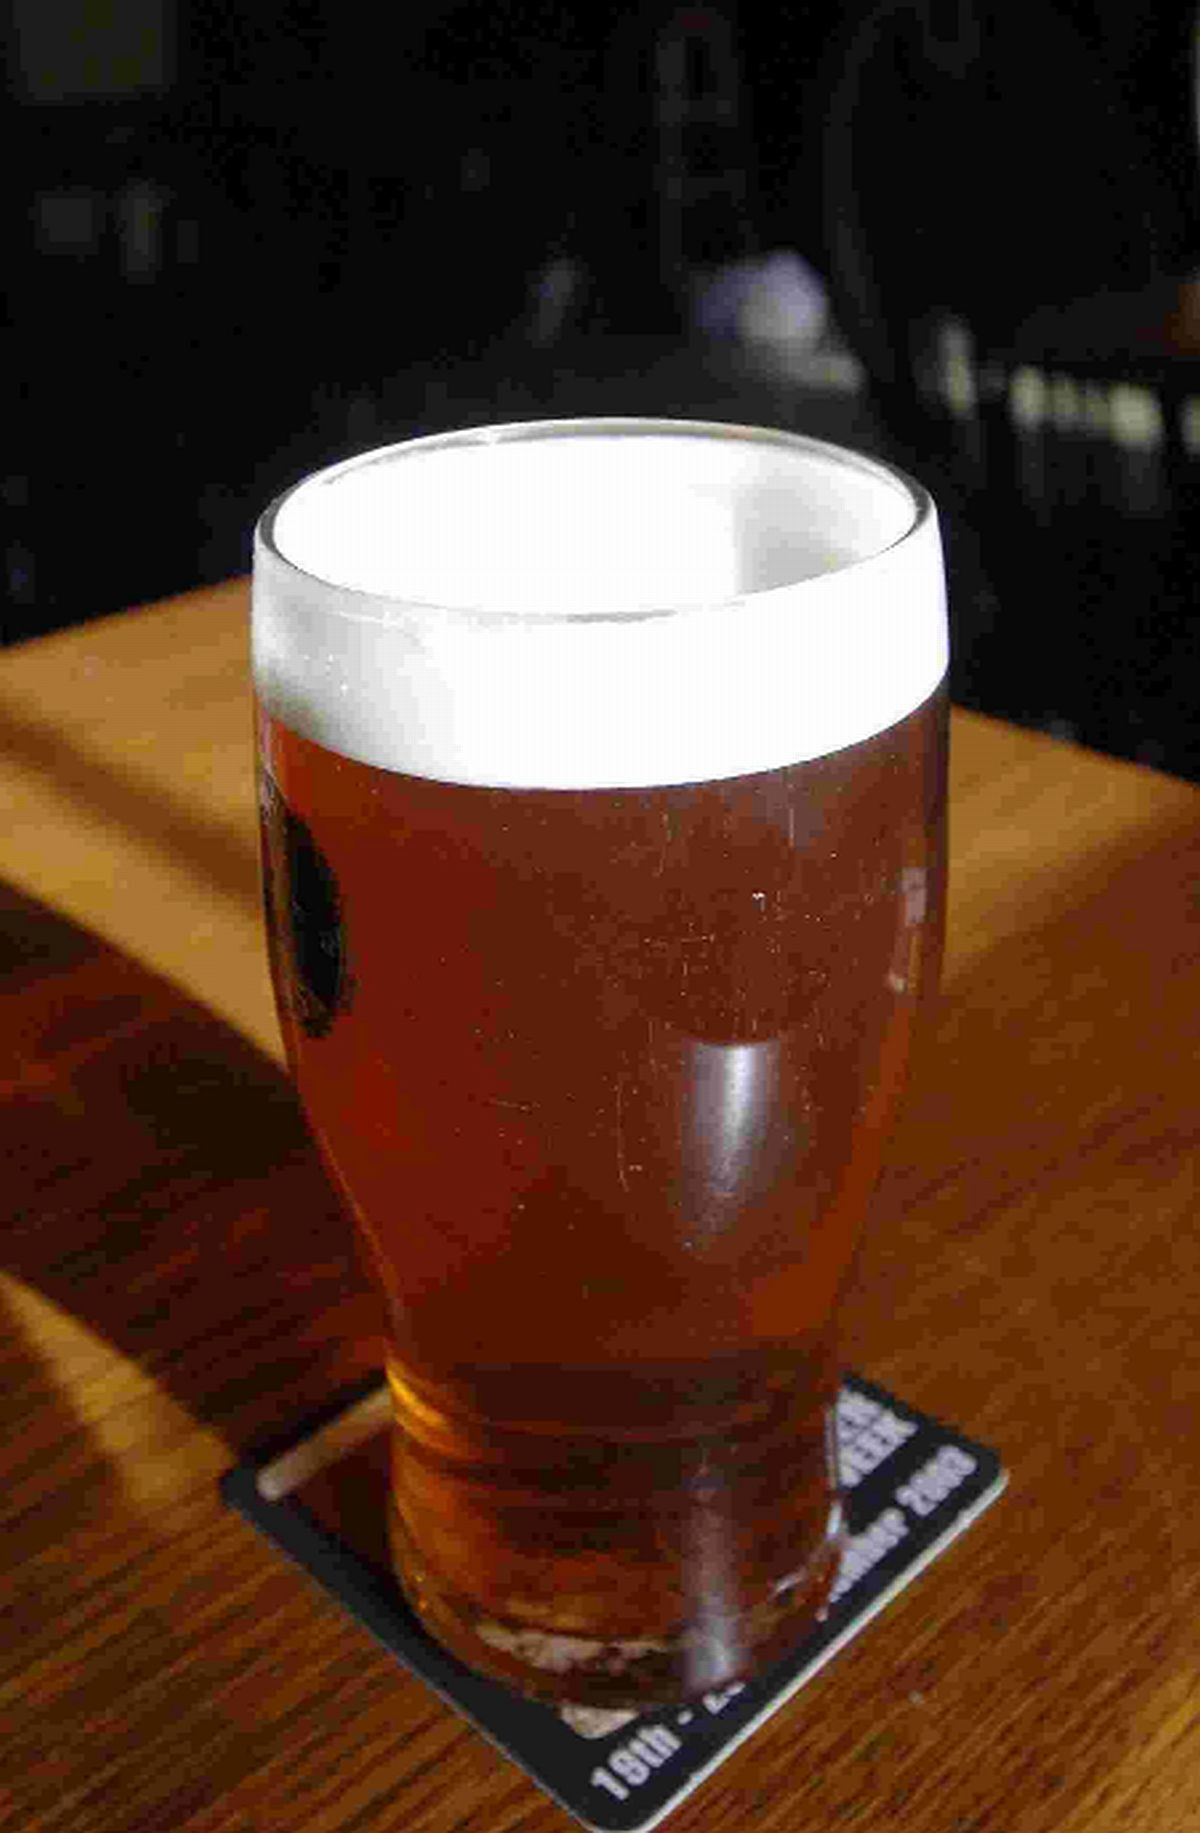 'Beer and Philosophy' group grapples with big issues over a pint